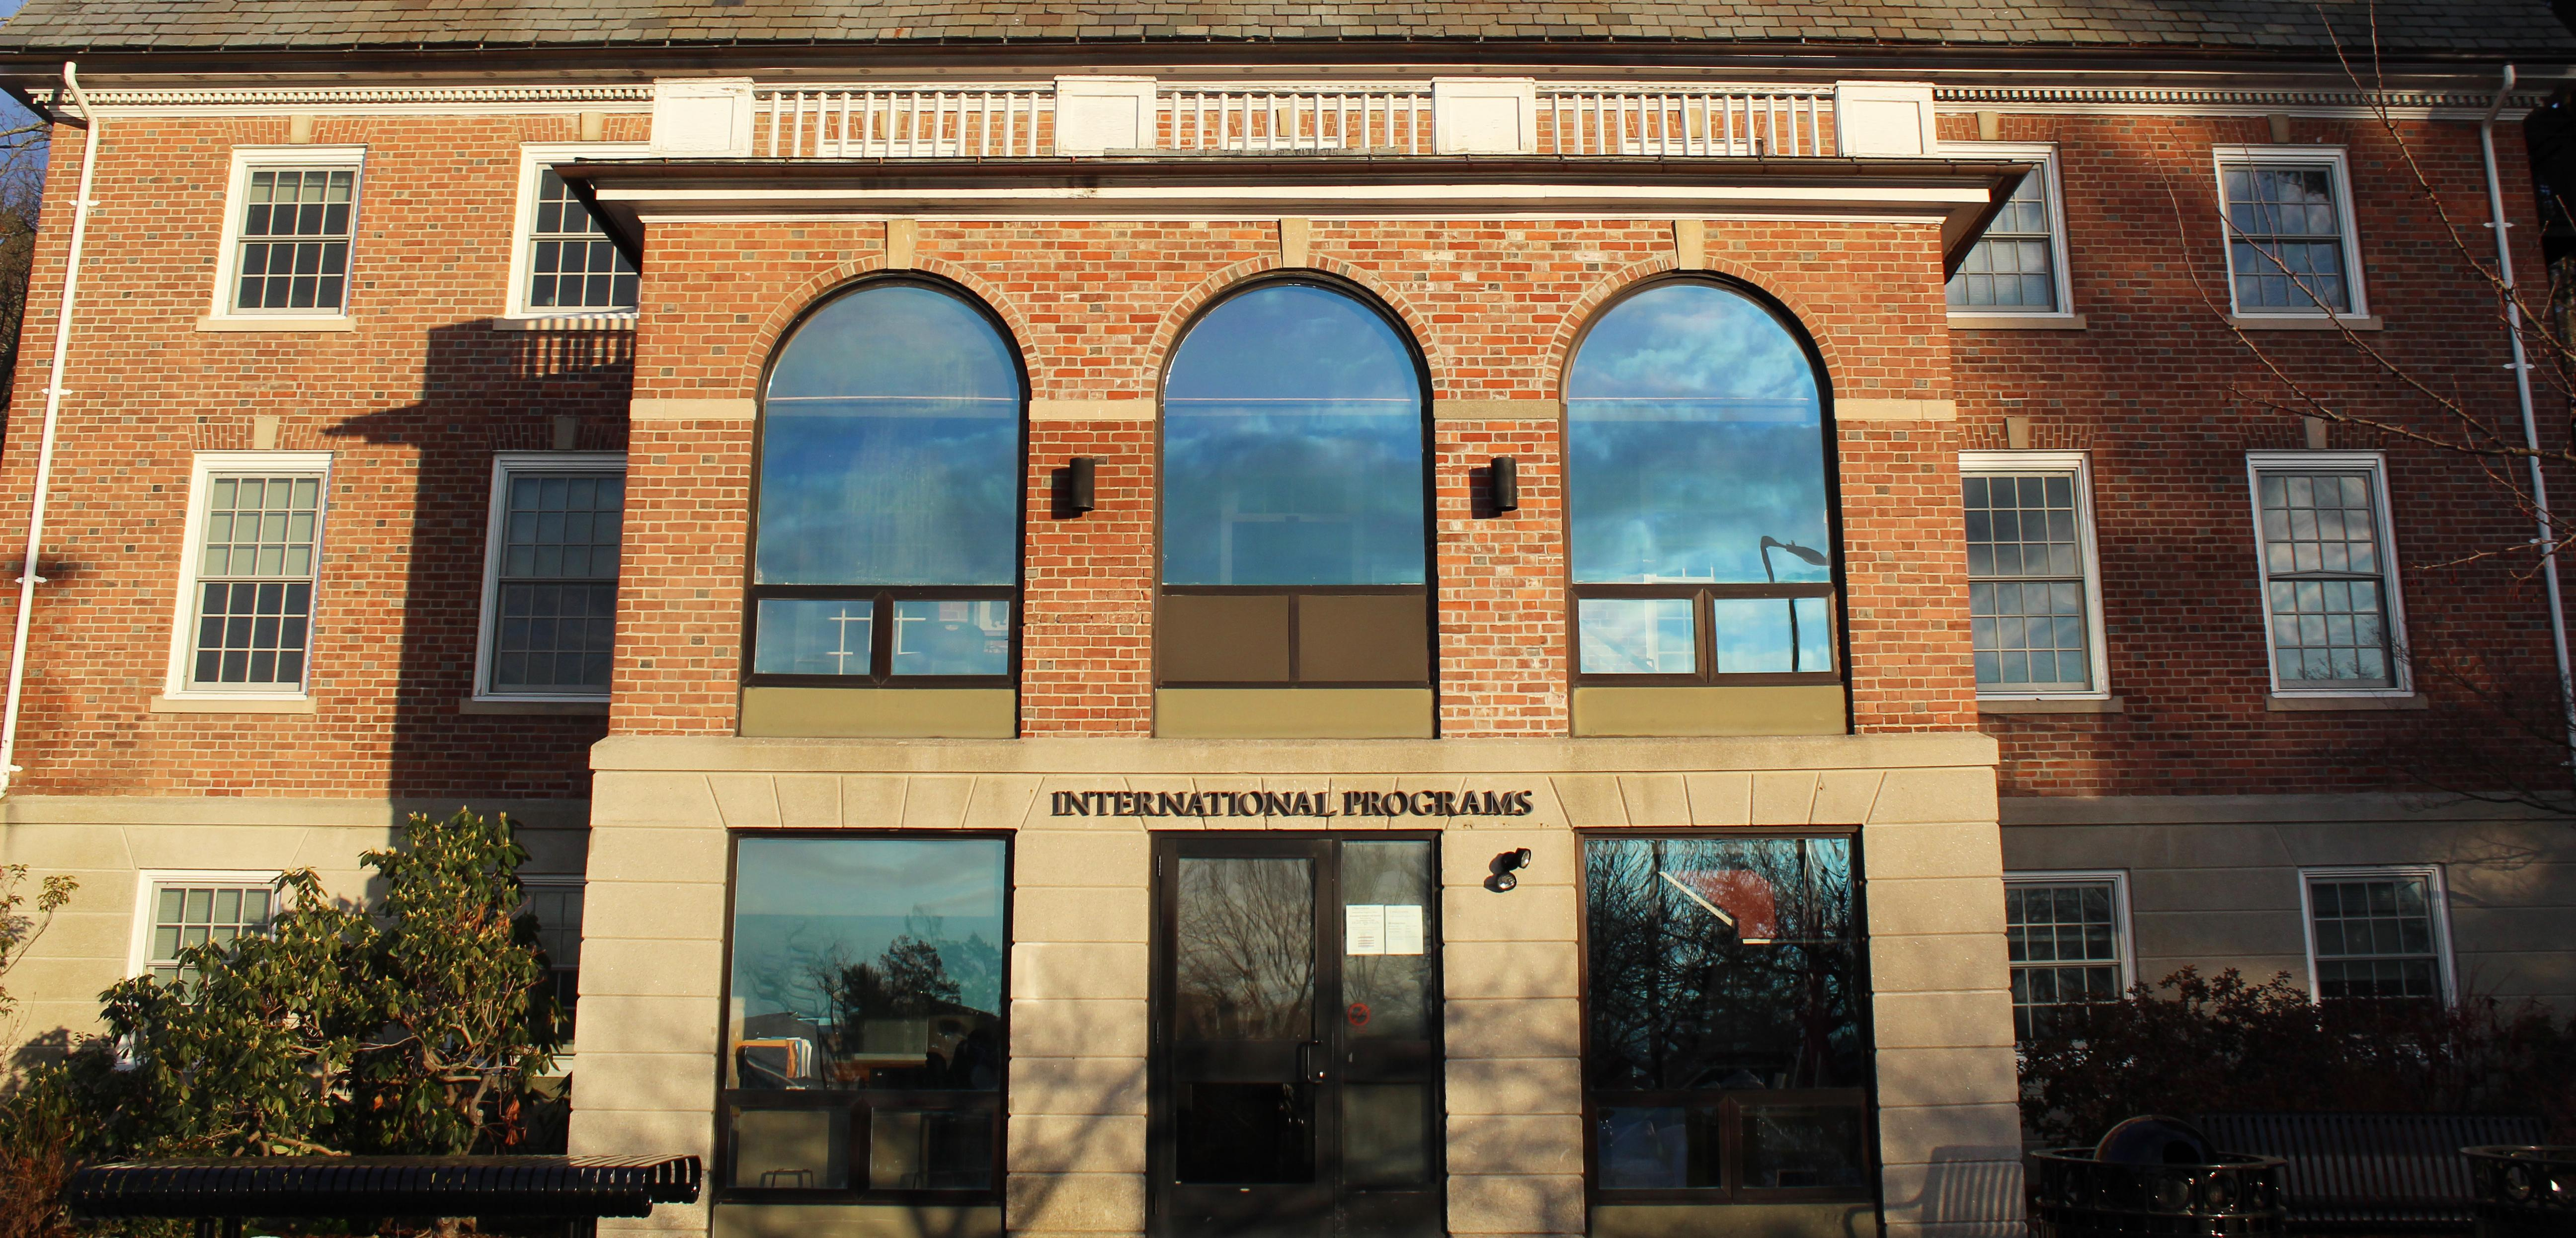 The International Programs Office Building